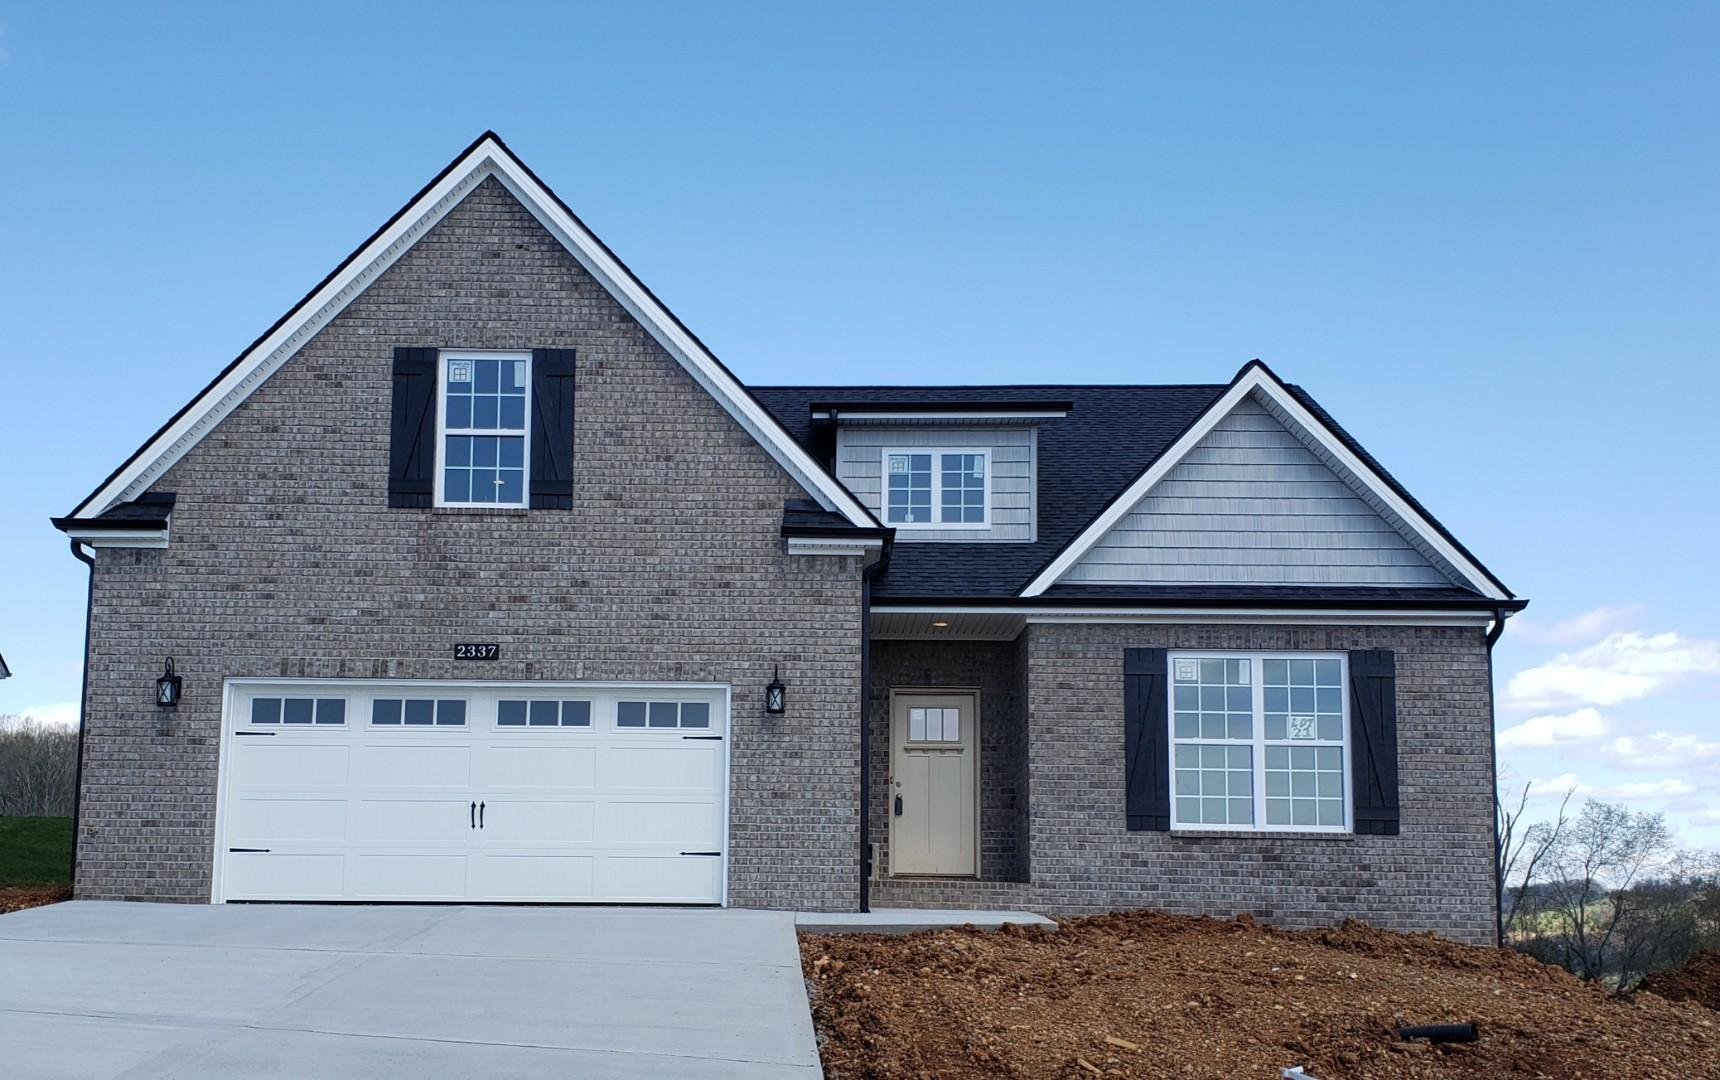 2337 Hickory Crest Lane, Knoxville, TN 37932